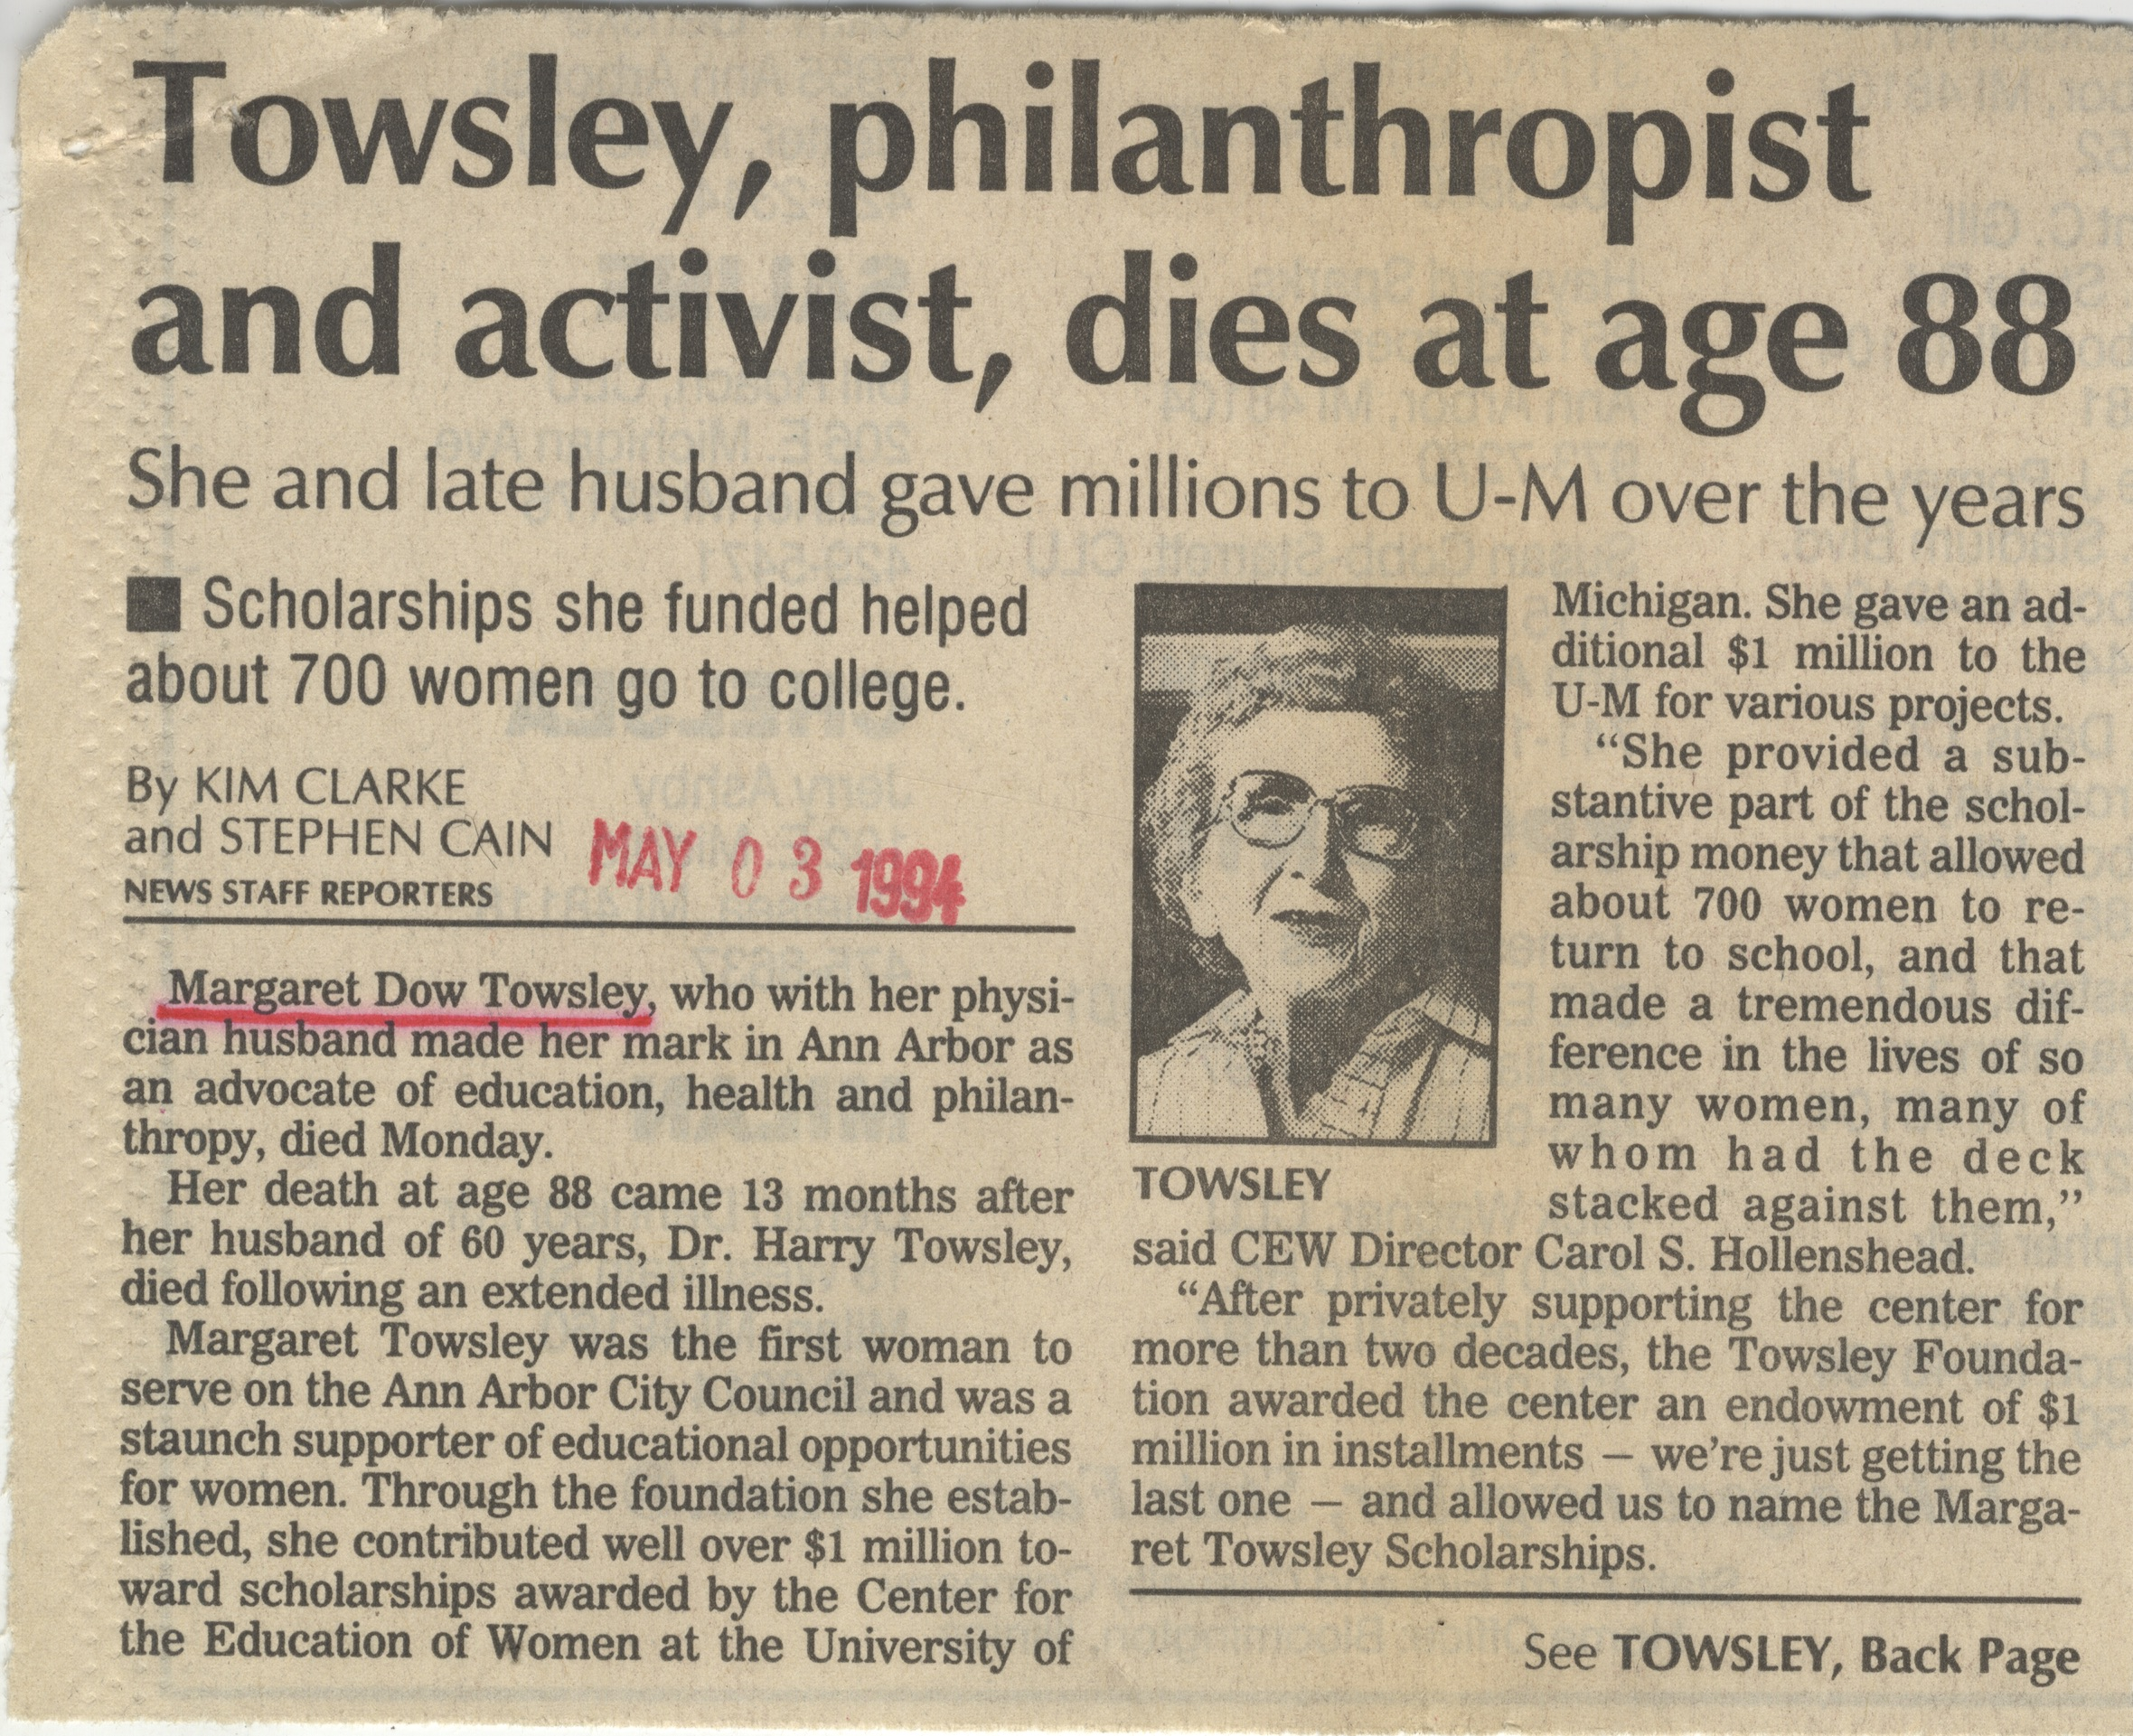 Towsley, philanthropist and activist, dies at age 88 image